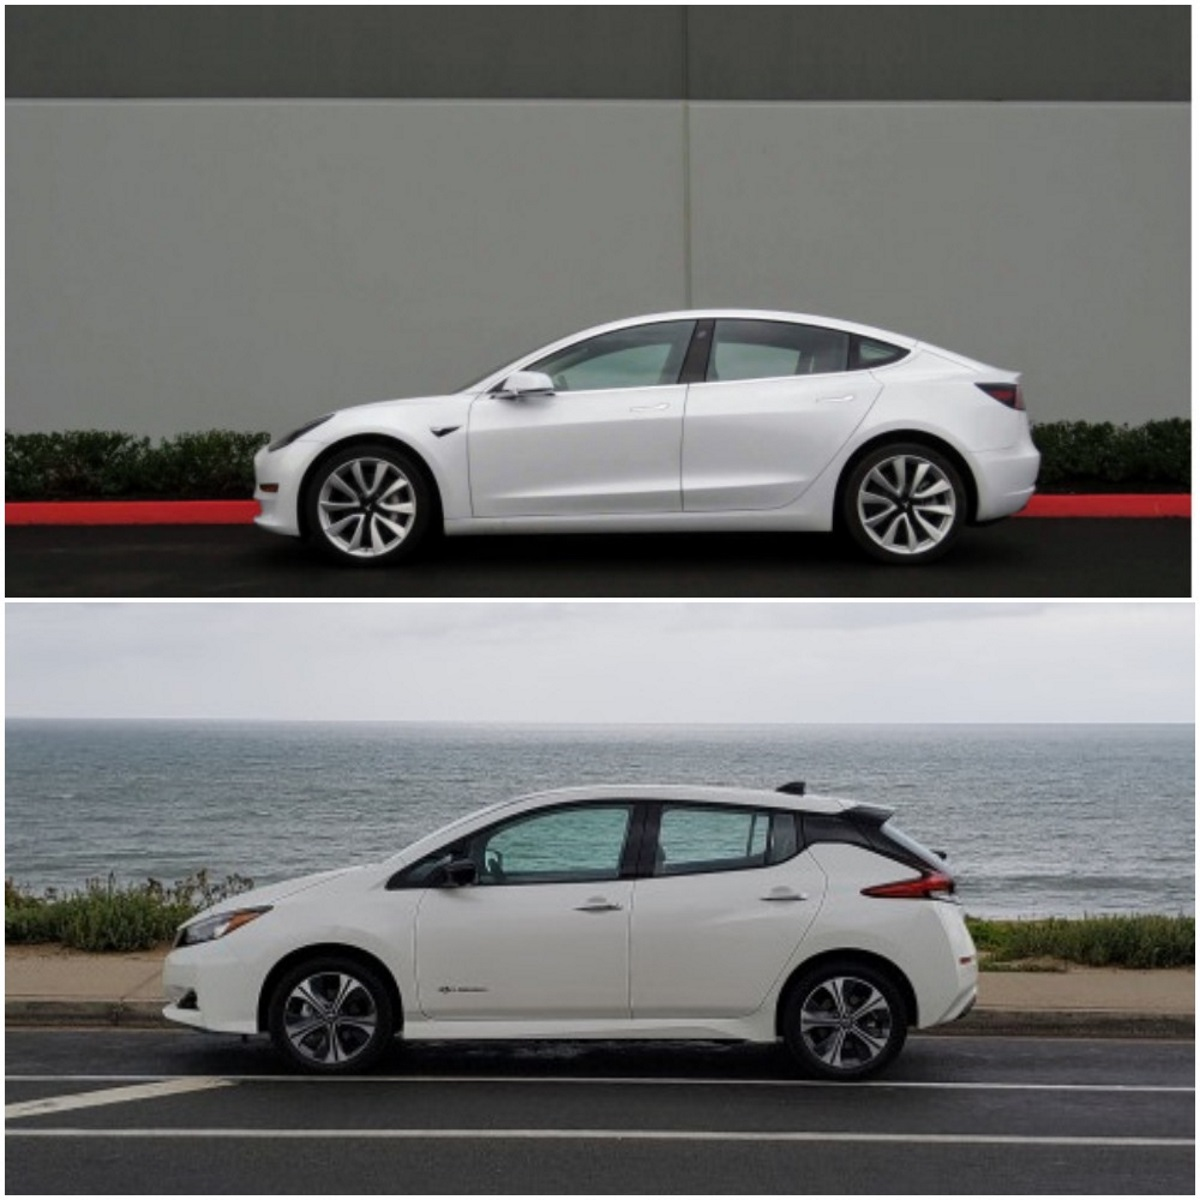 2019 Nissan Leaf: Tesla Model 3 Standard Range Vs. Nissan Leaf Plus: What